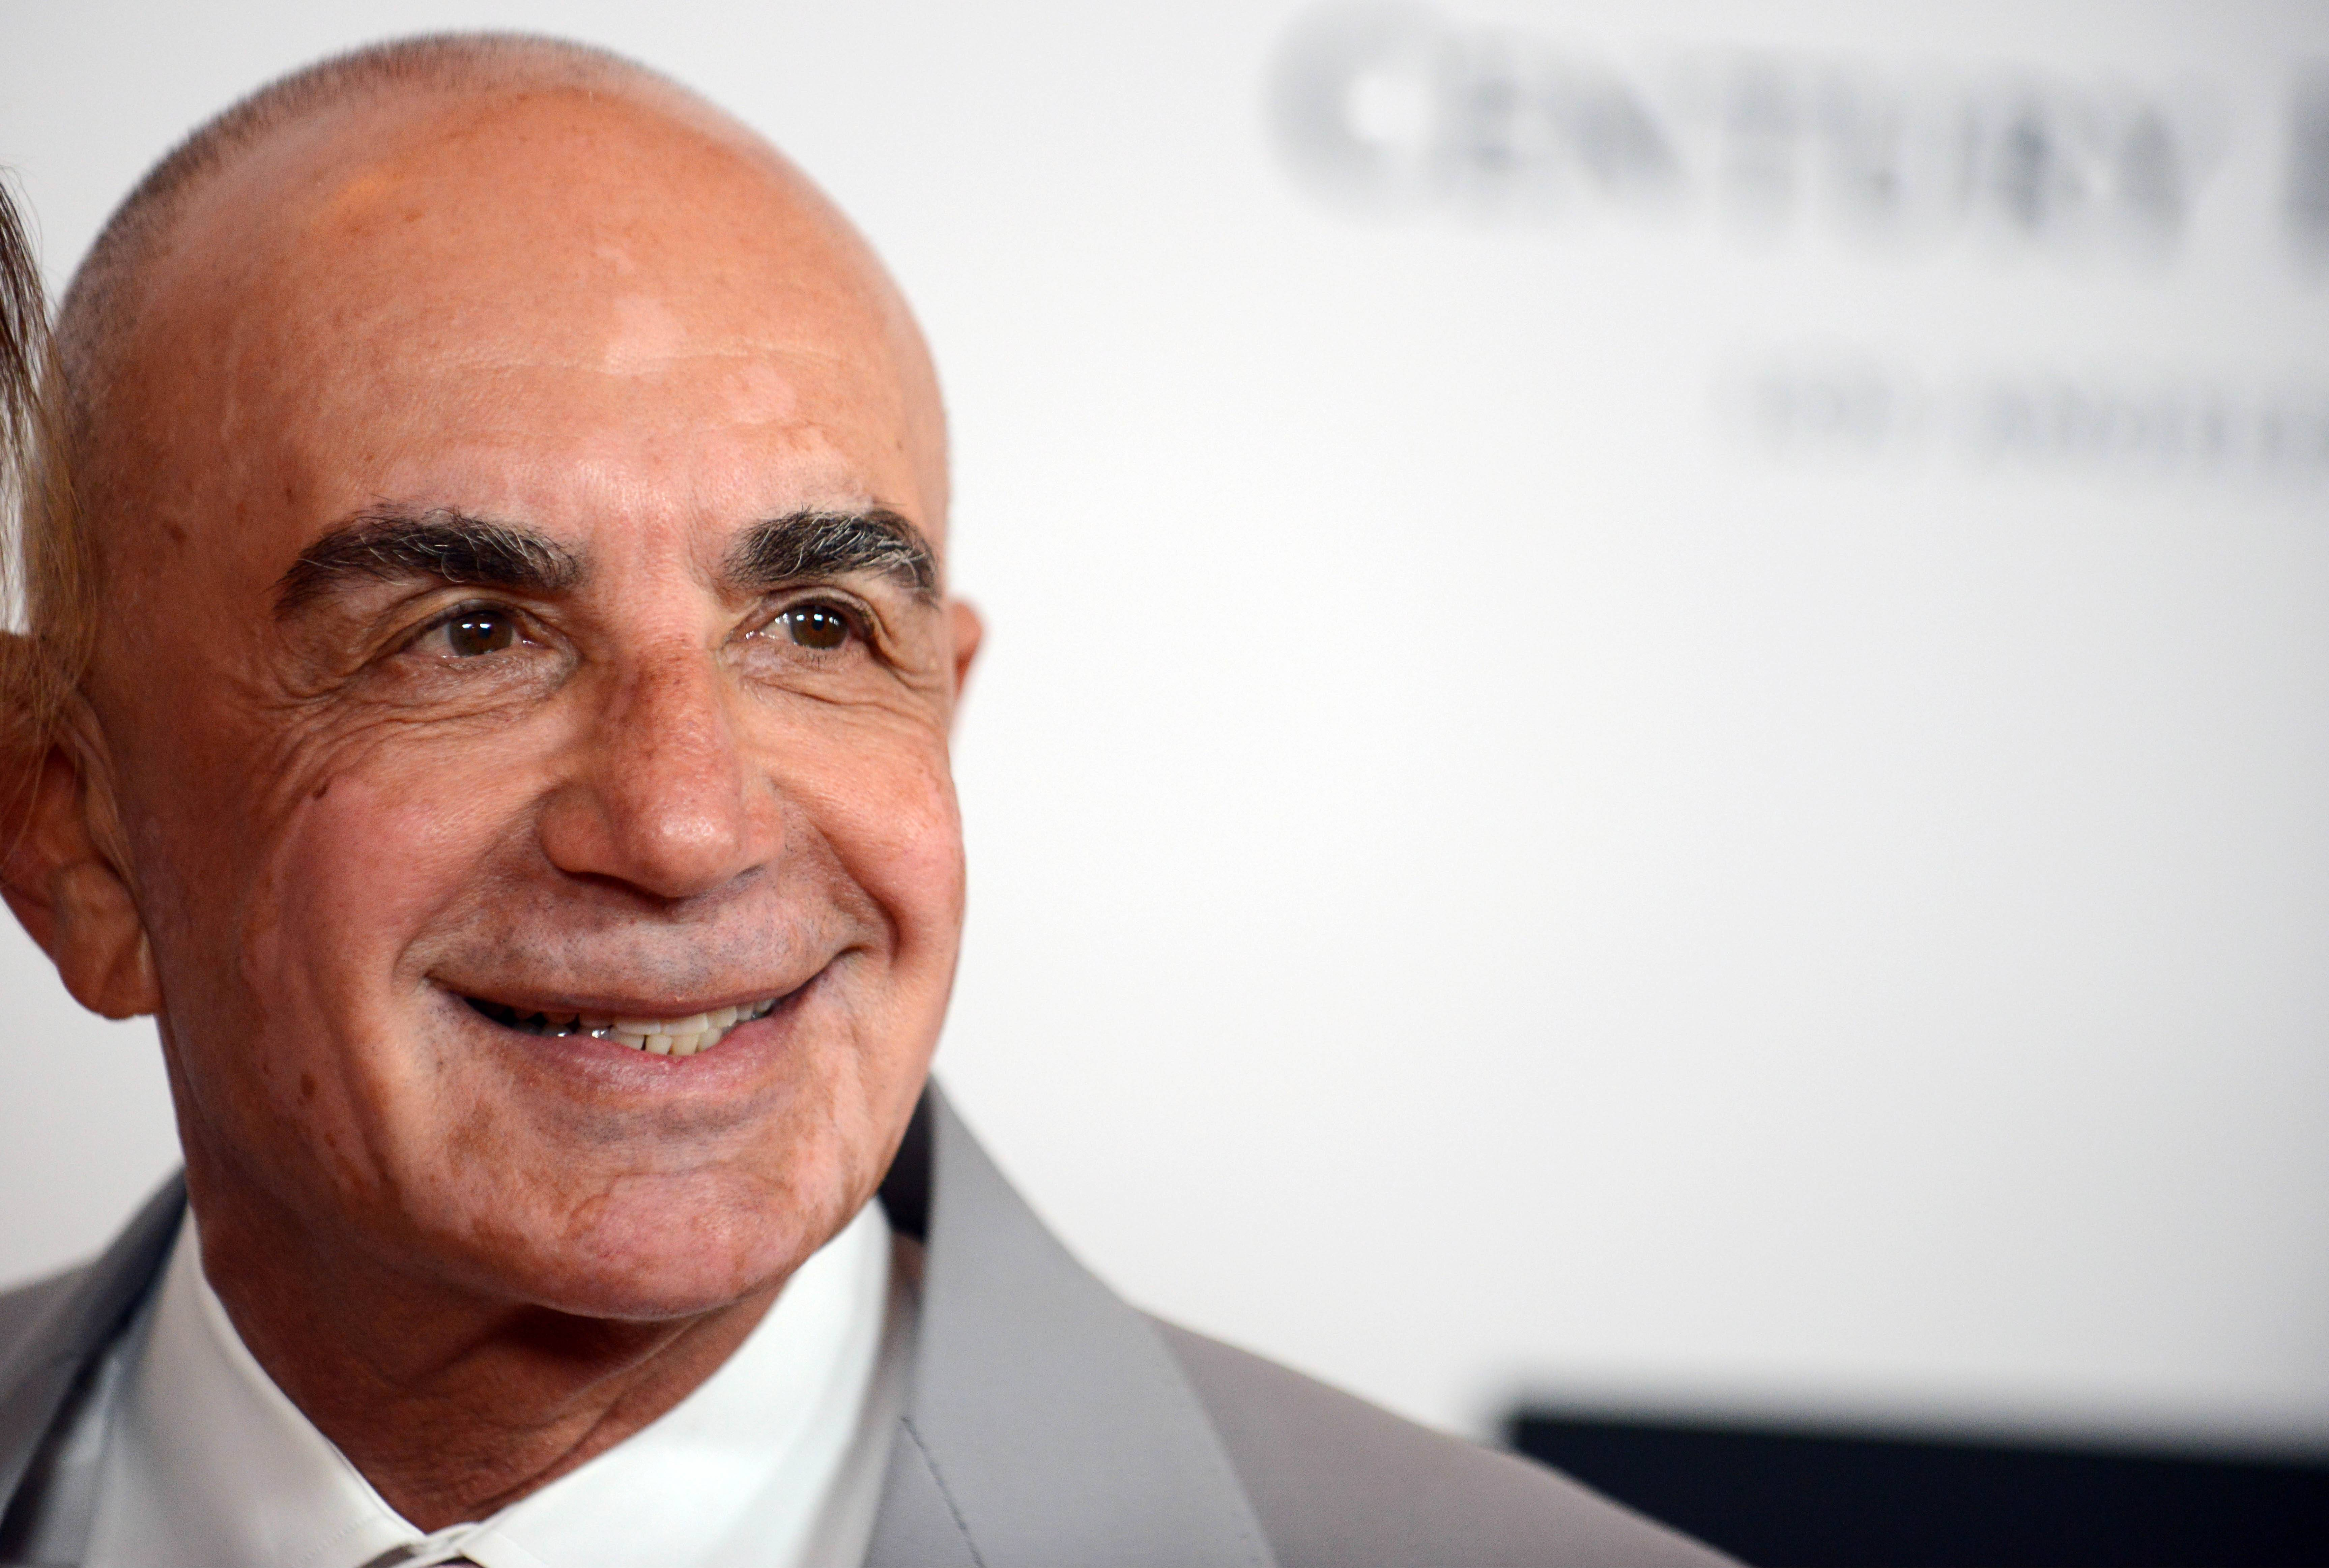 Attorney Robert Shapiro joined a high profile Los Angeles law firm and was one of the founders of Legal Zoom.com, a do-it-yourself document service for people bringing lawsuits.